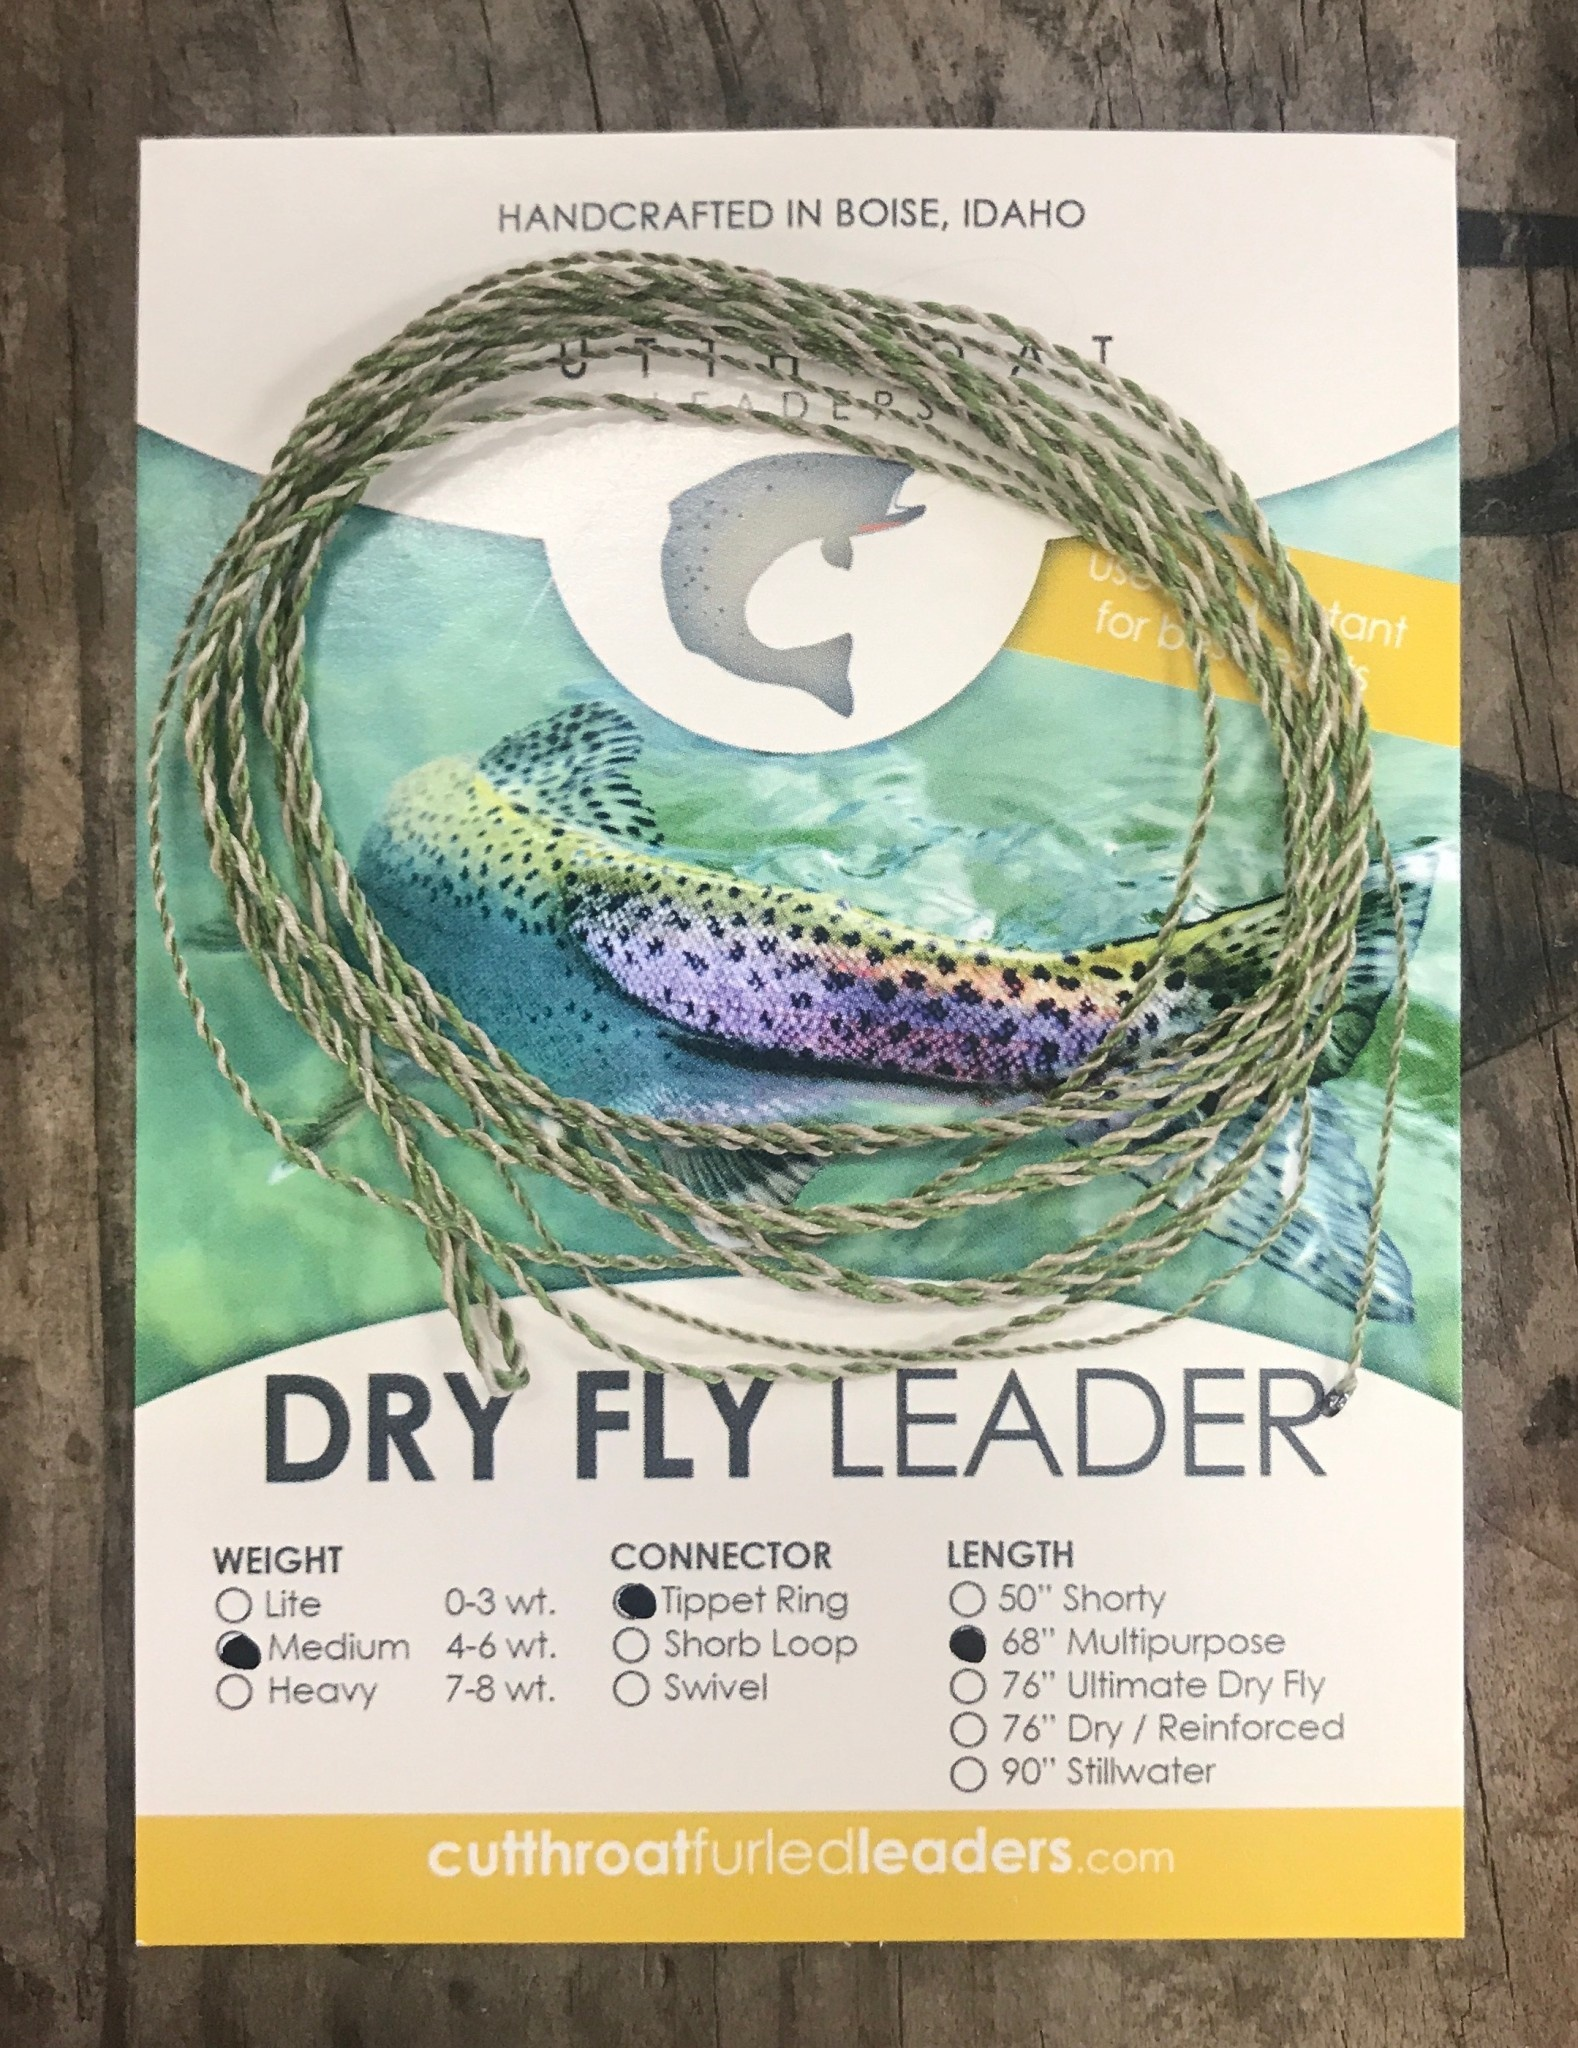 Cutthroat Furled Dry Fly Leaders